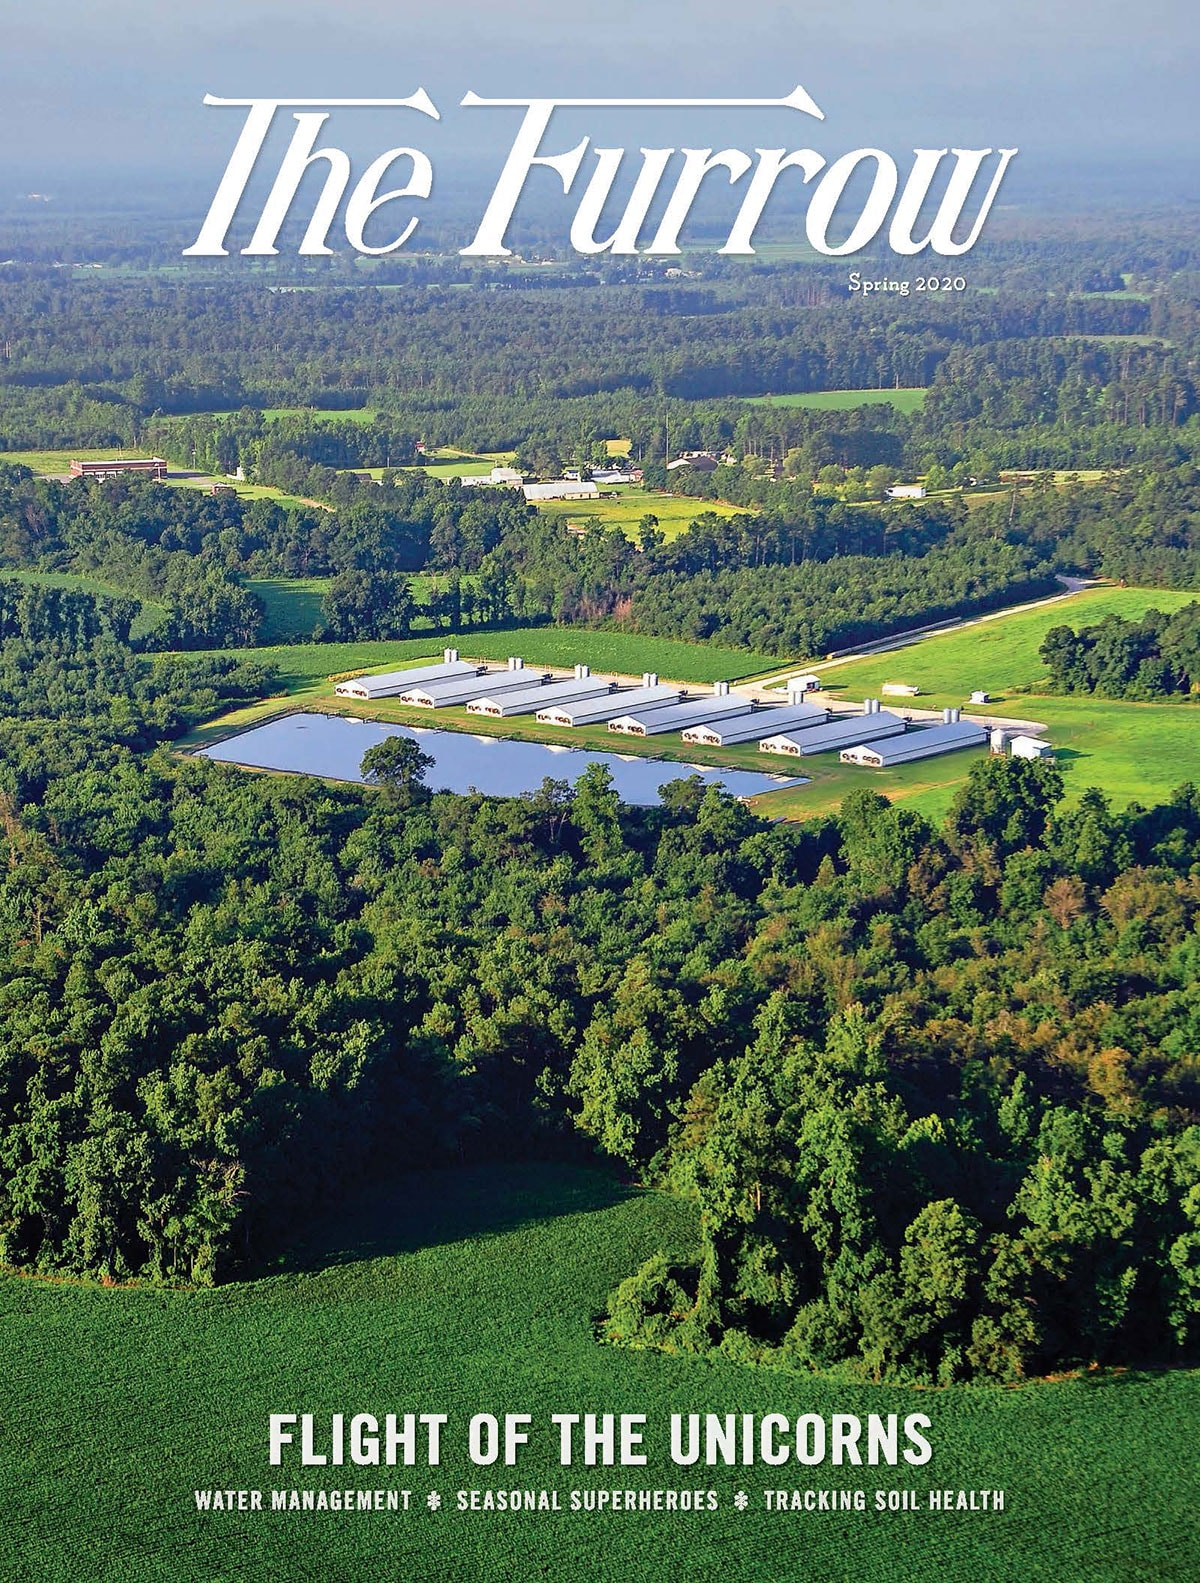 The Furrow - Spring 2020 Issue